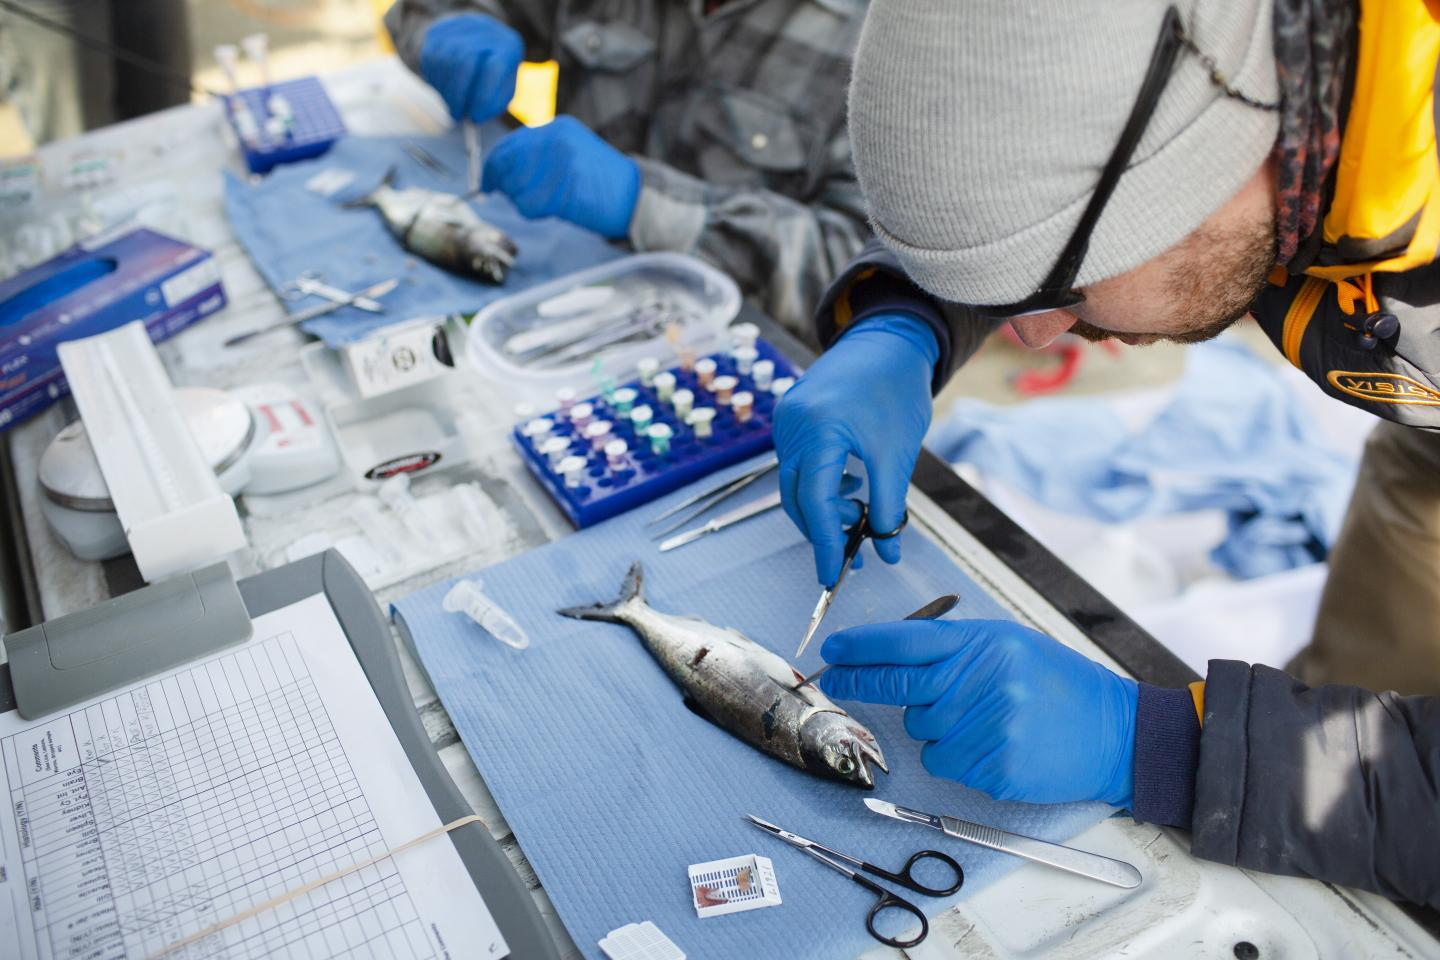 Three New Viruses Discovered in Endangered Wild Pacific Salmon Populations